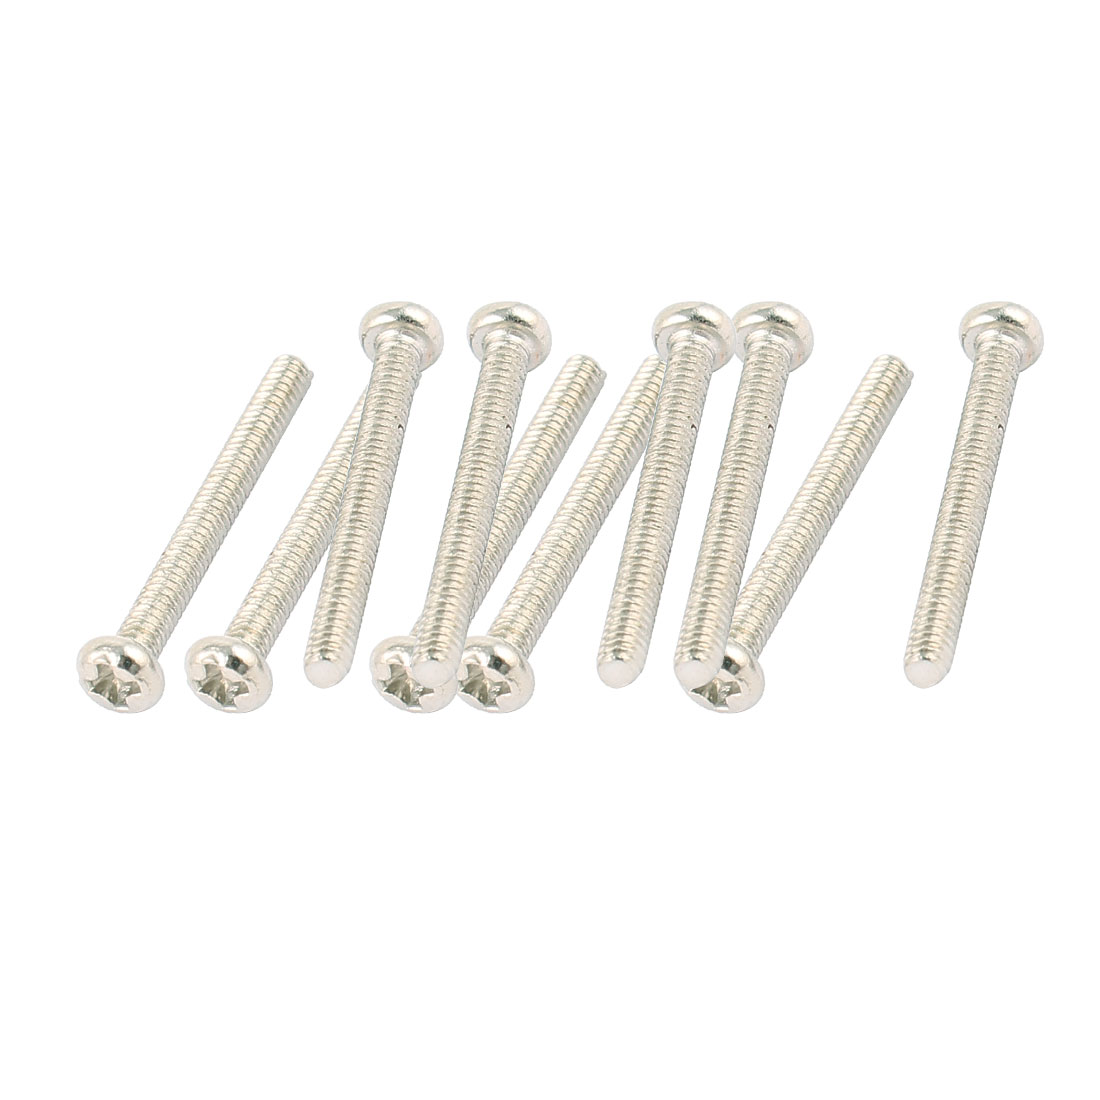 10Pcs Metal 2mmx18mm Round Cross Head Screws Bolts for RC Model Car Spare Part